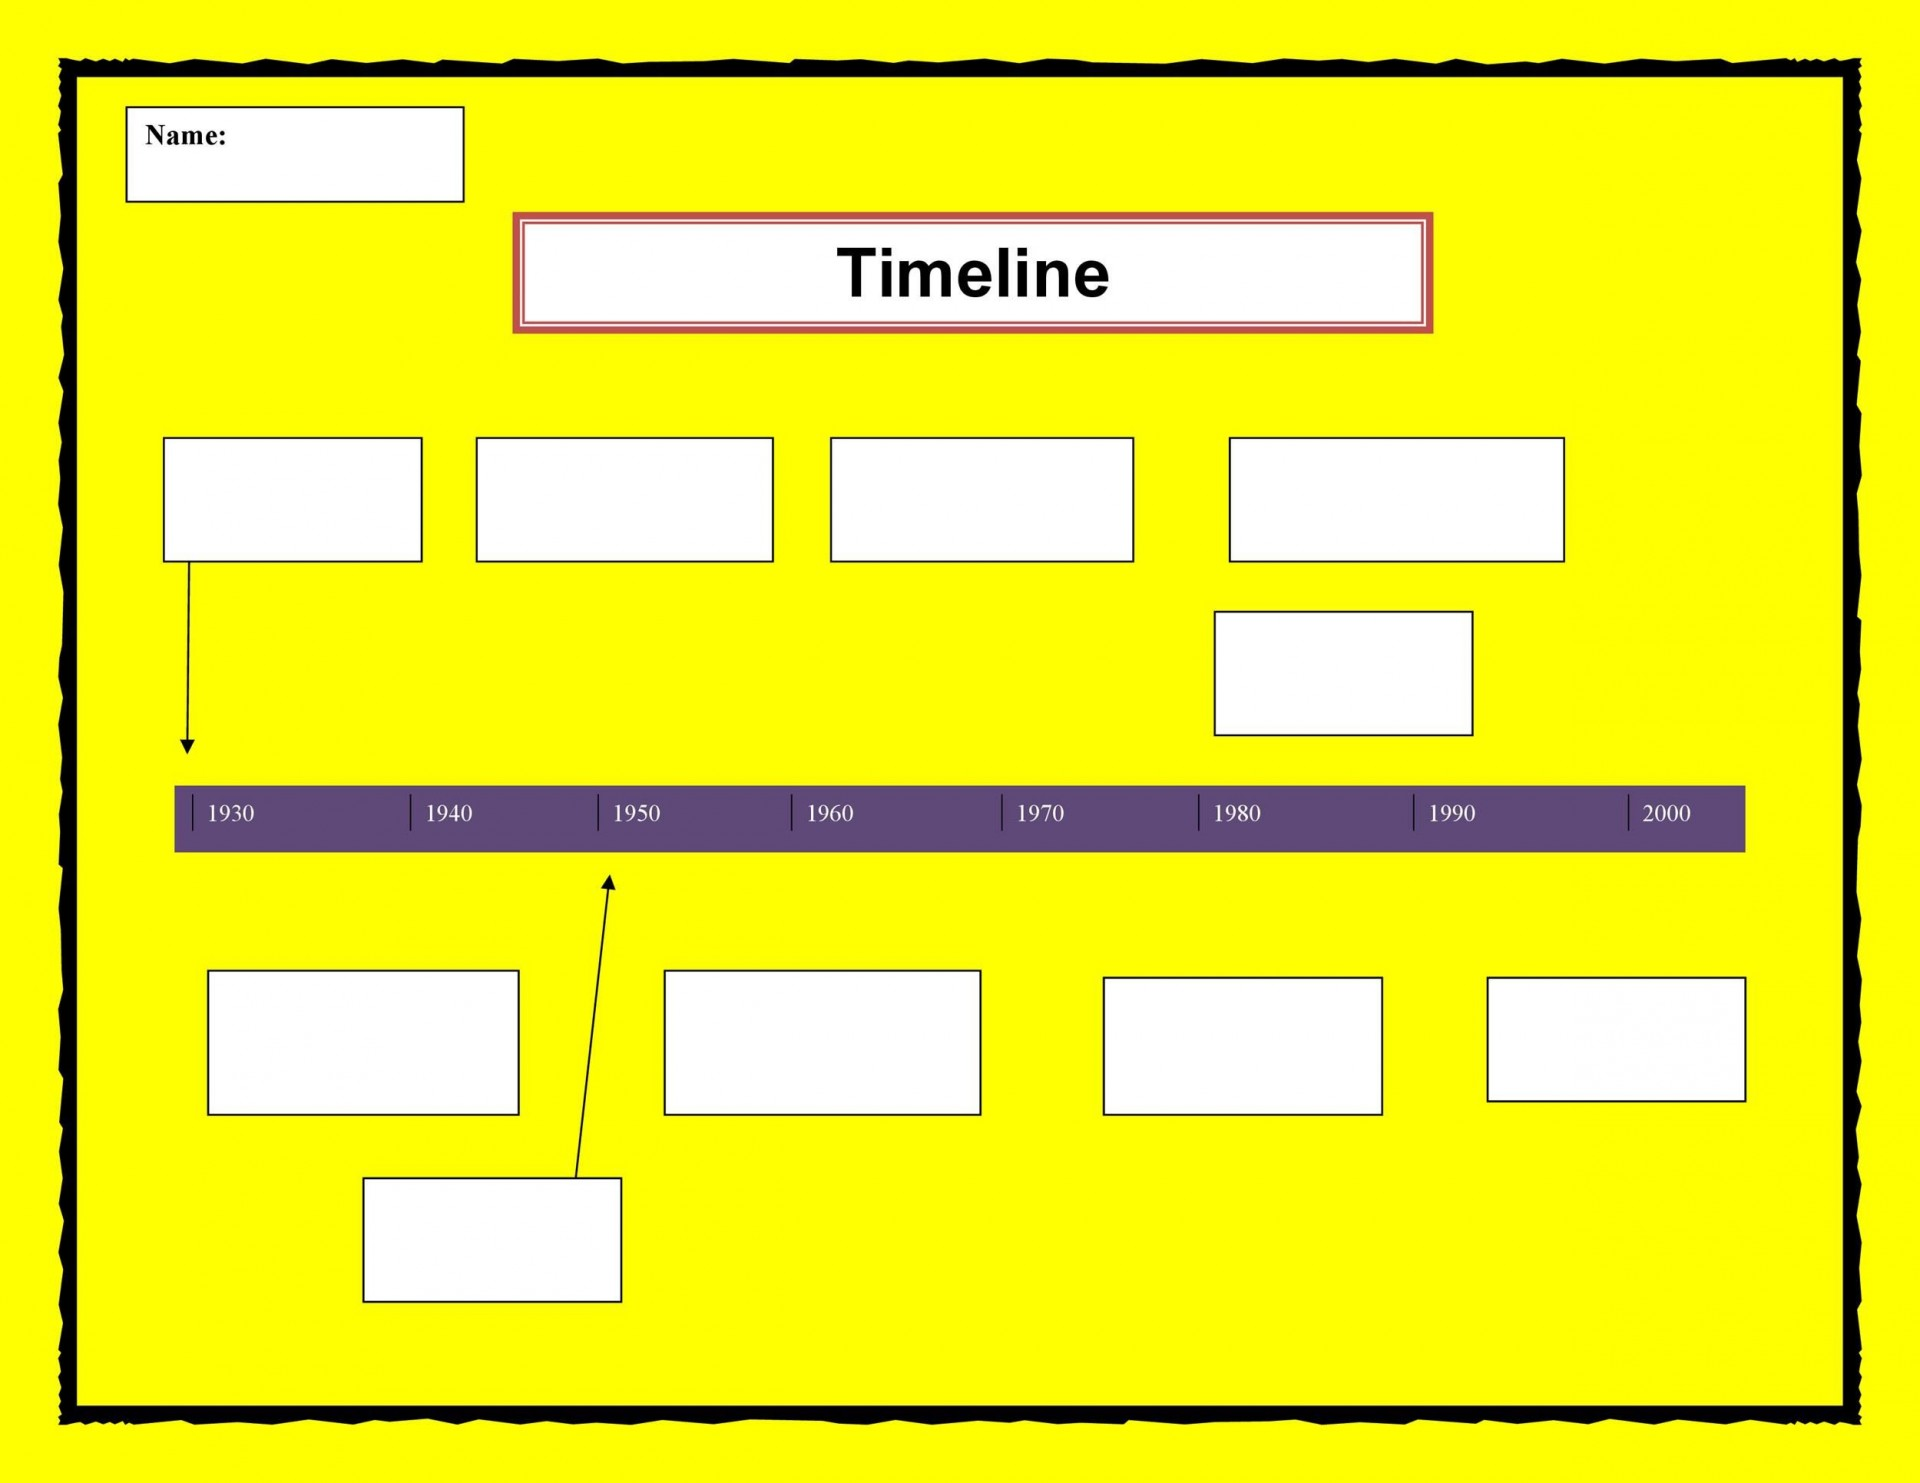 005 Awful Timeline Template In Word Inspiration  2010 Wordpres Free1920